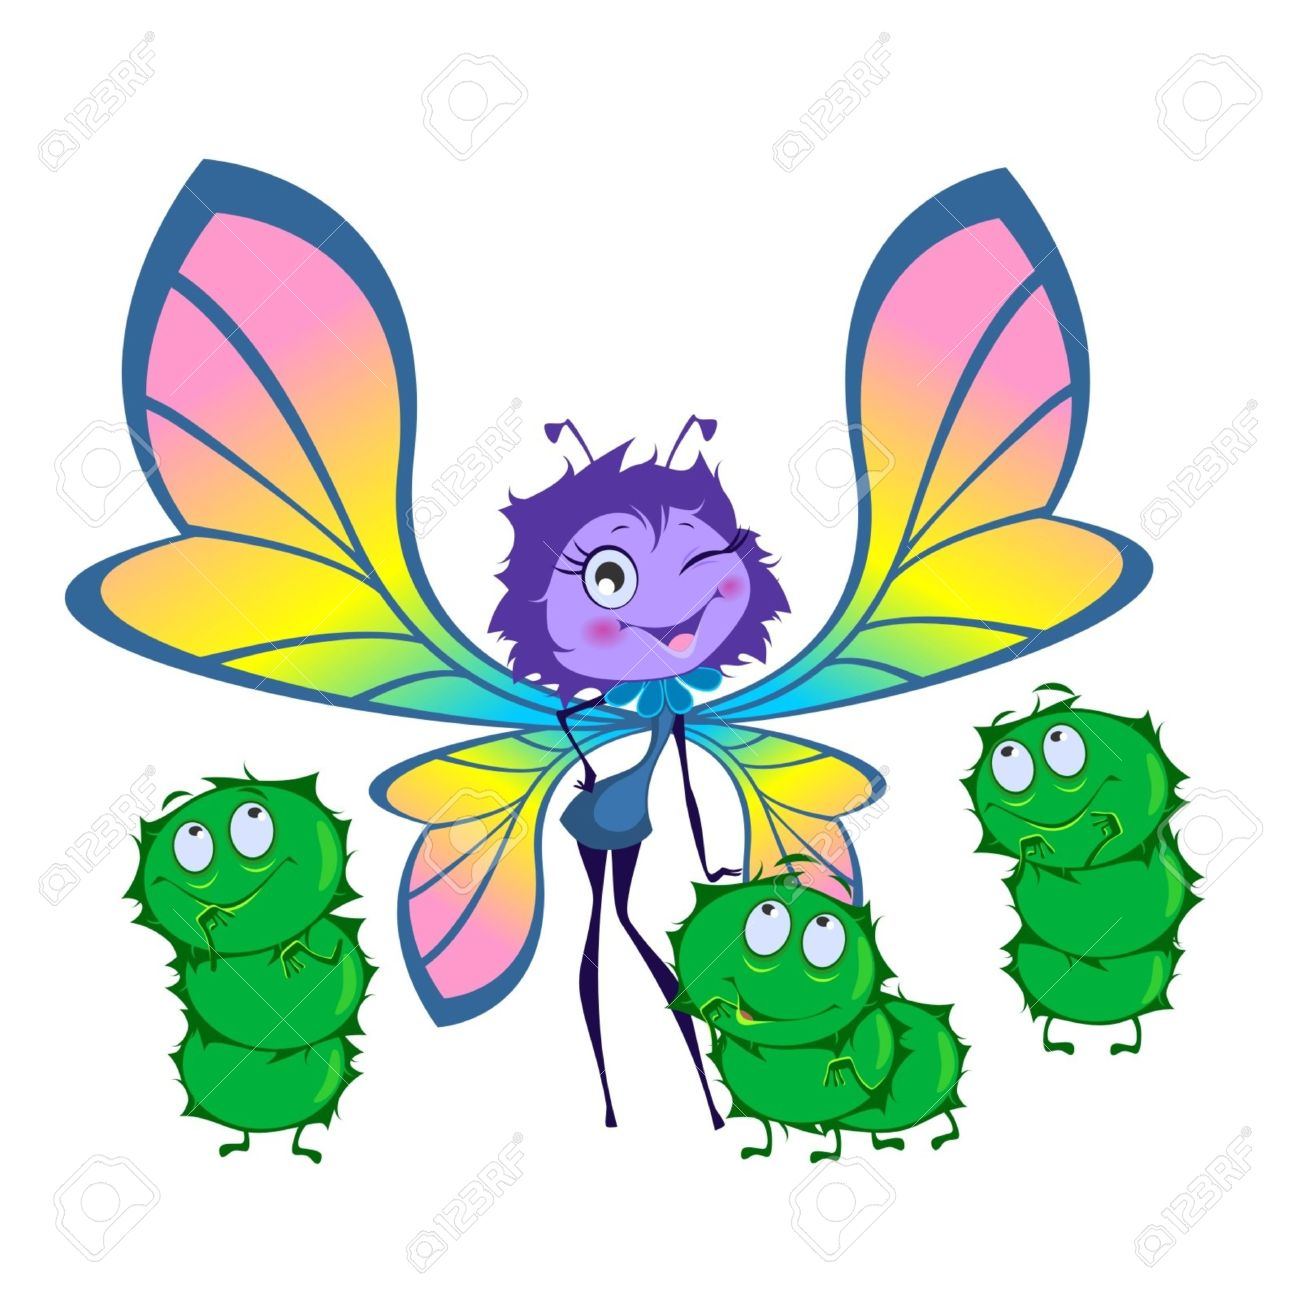 caterpillar and butterfly clipart - Clipground